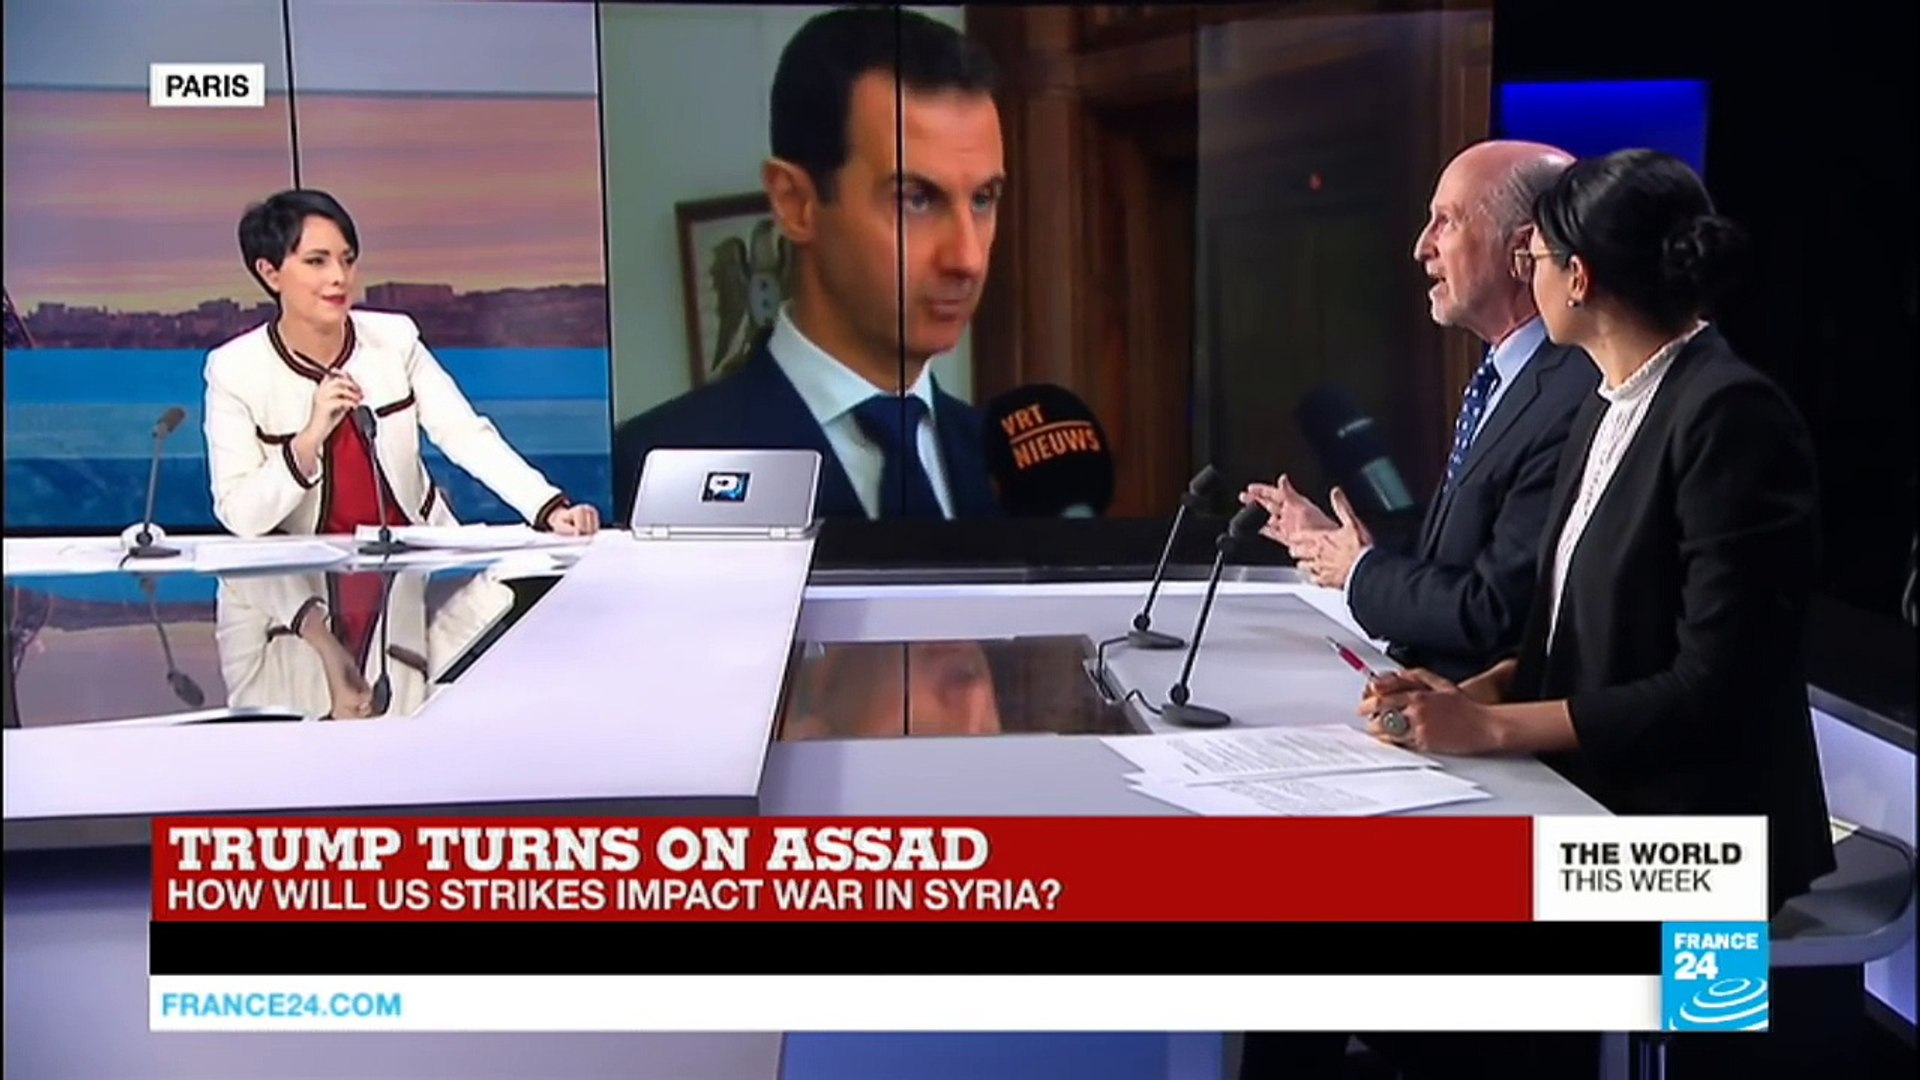 Trump turns on Assad: How will US strikes impact war in Syria? (part 2)